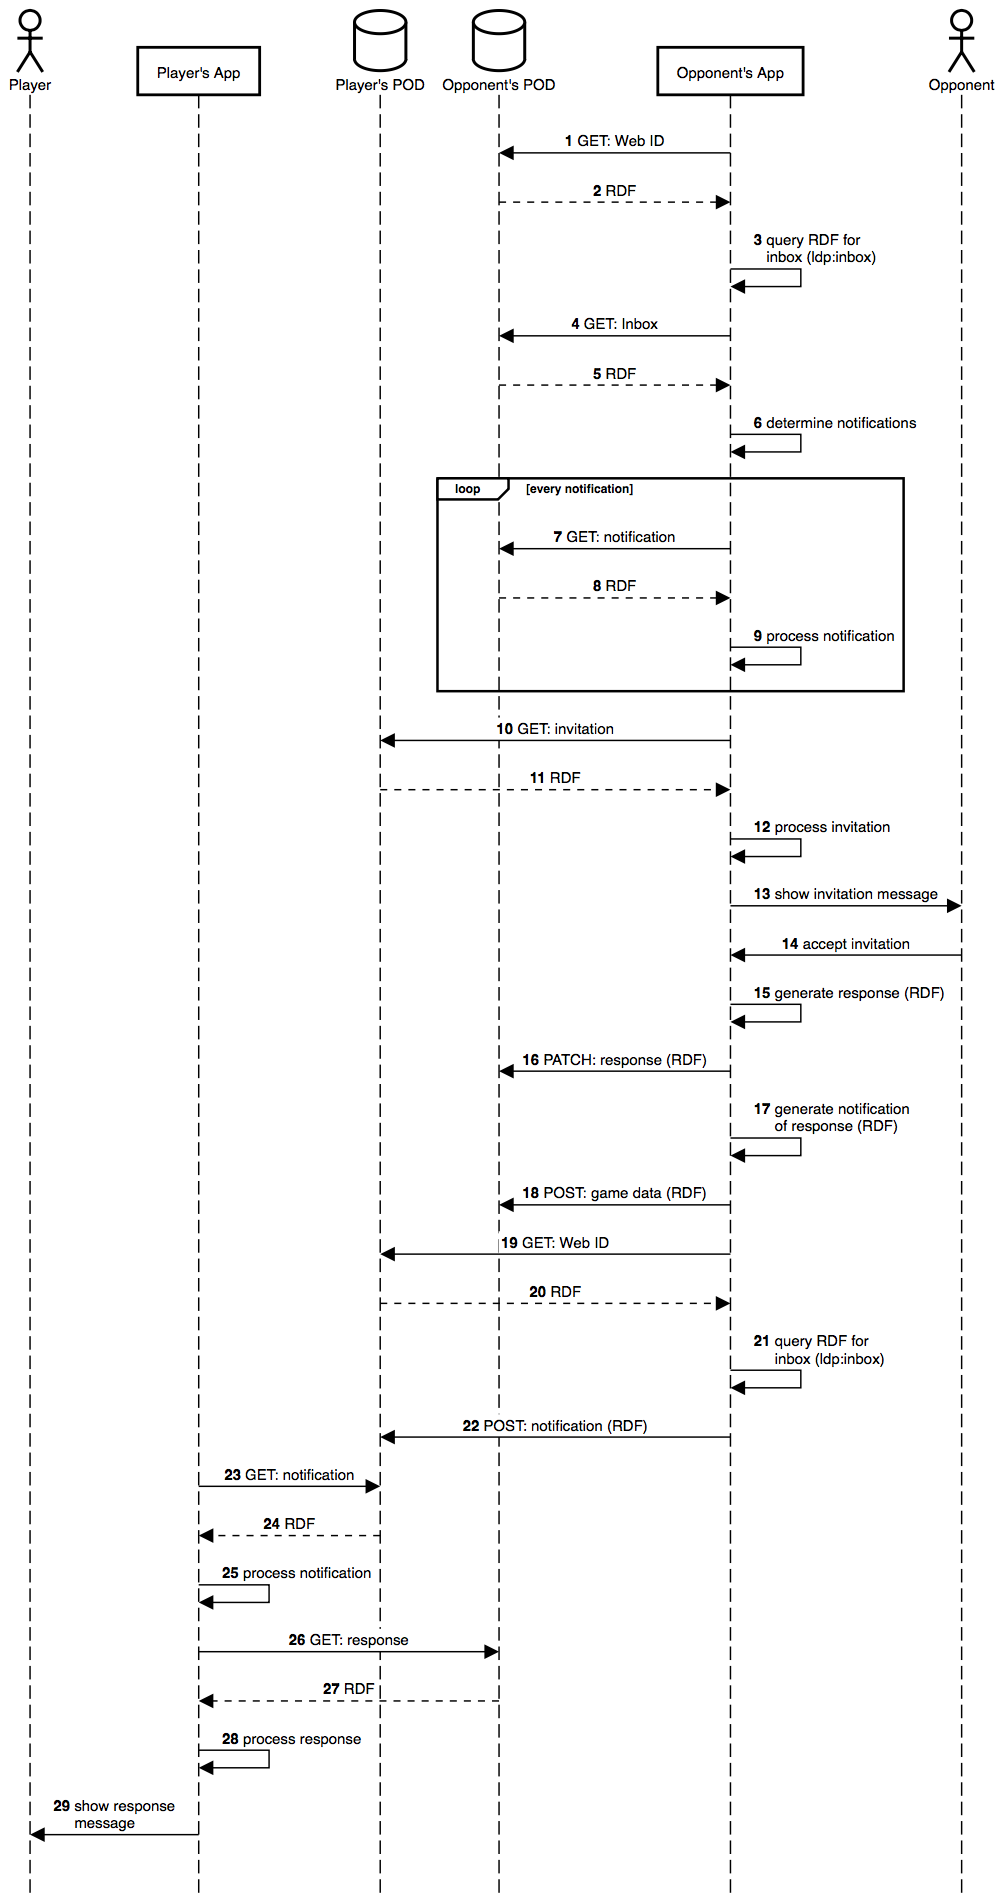 Join game sequence diagram